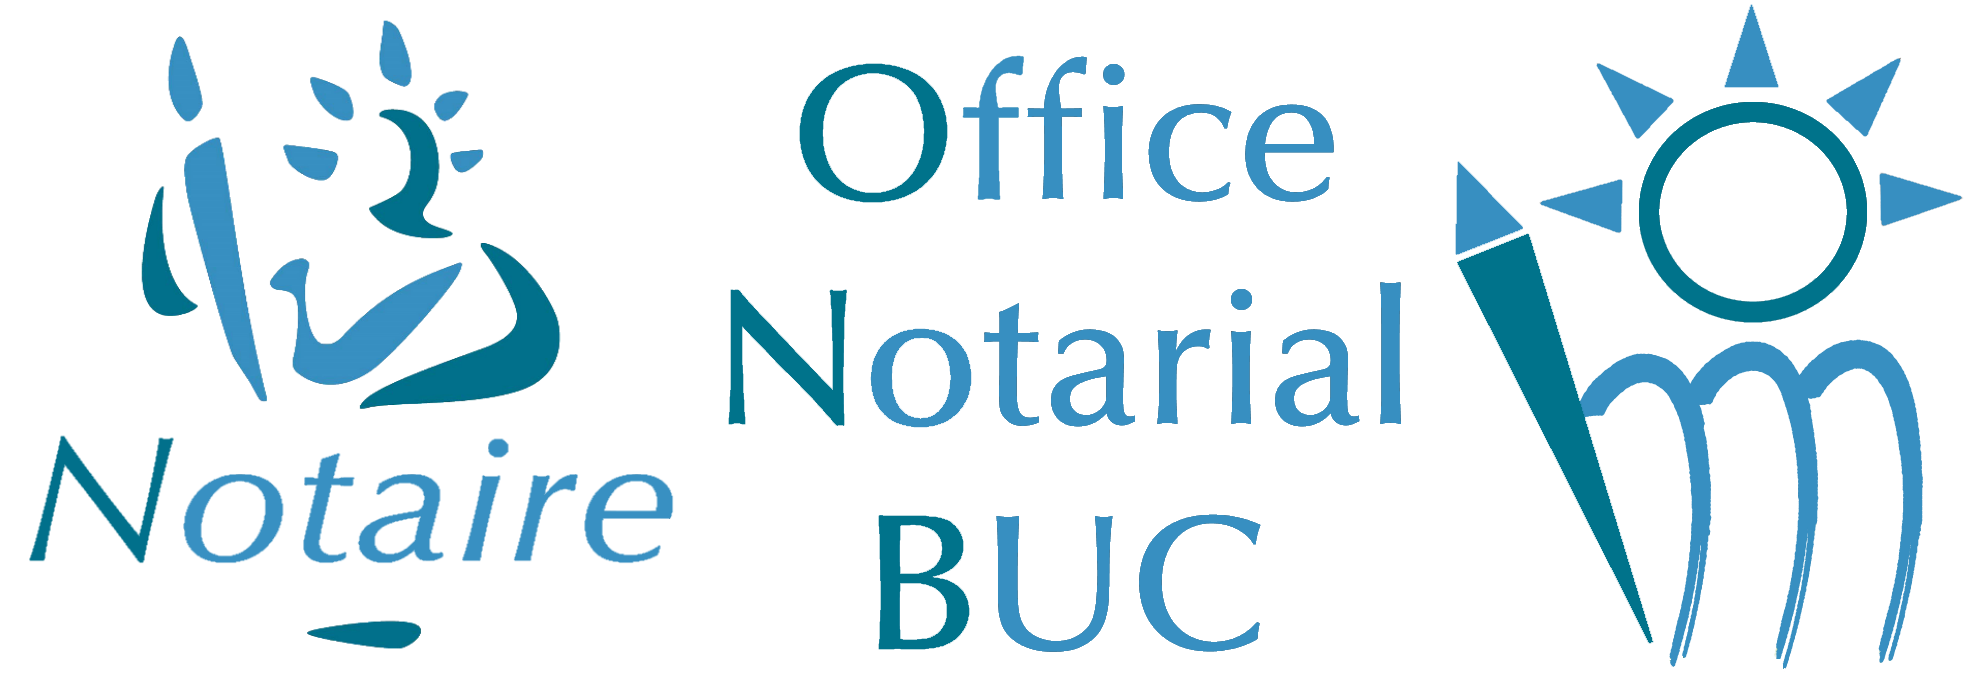 Office Notarial Buc